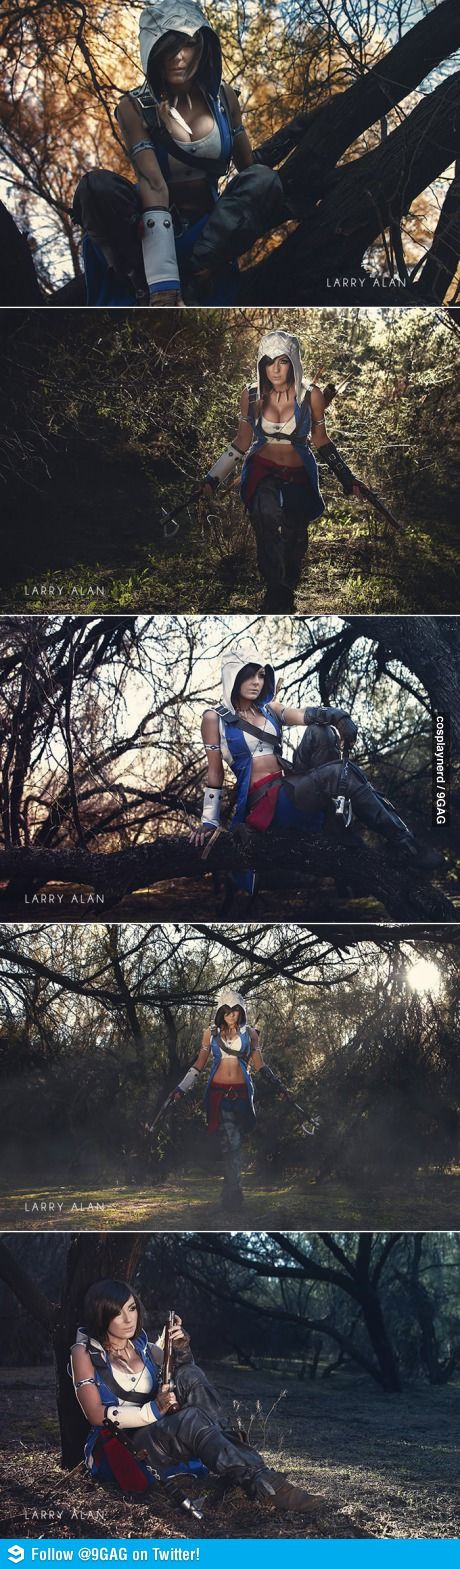 Assassins Creed Cosplay Jessica Nigri. She's such a cool chick!!!